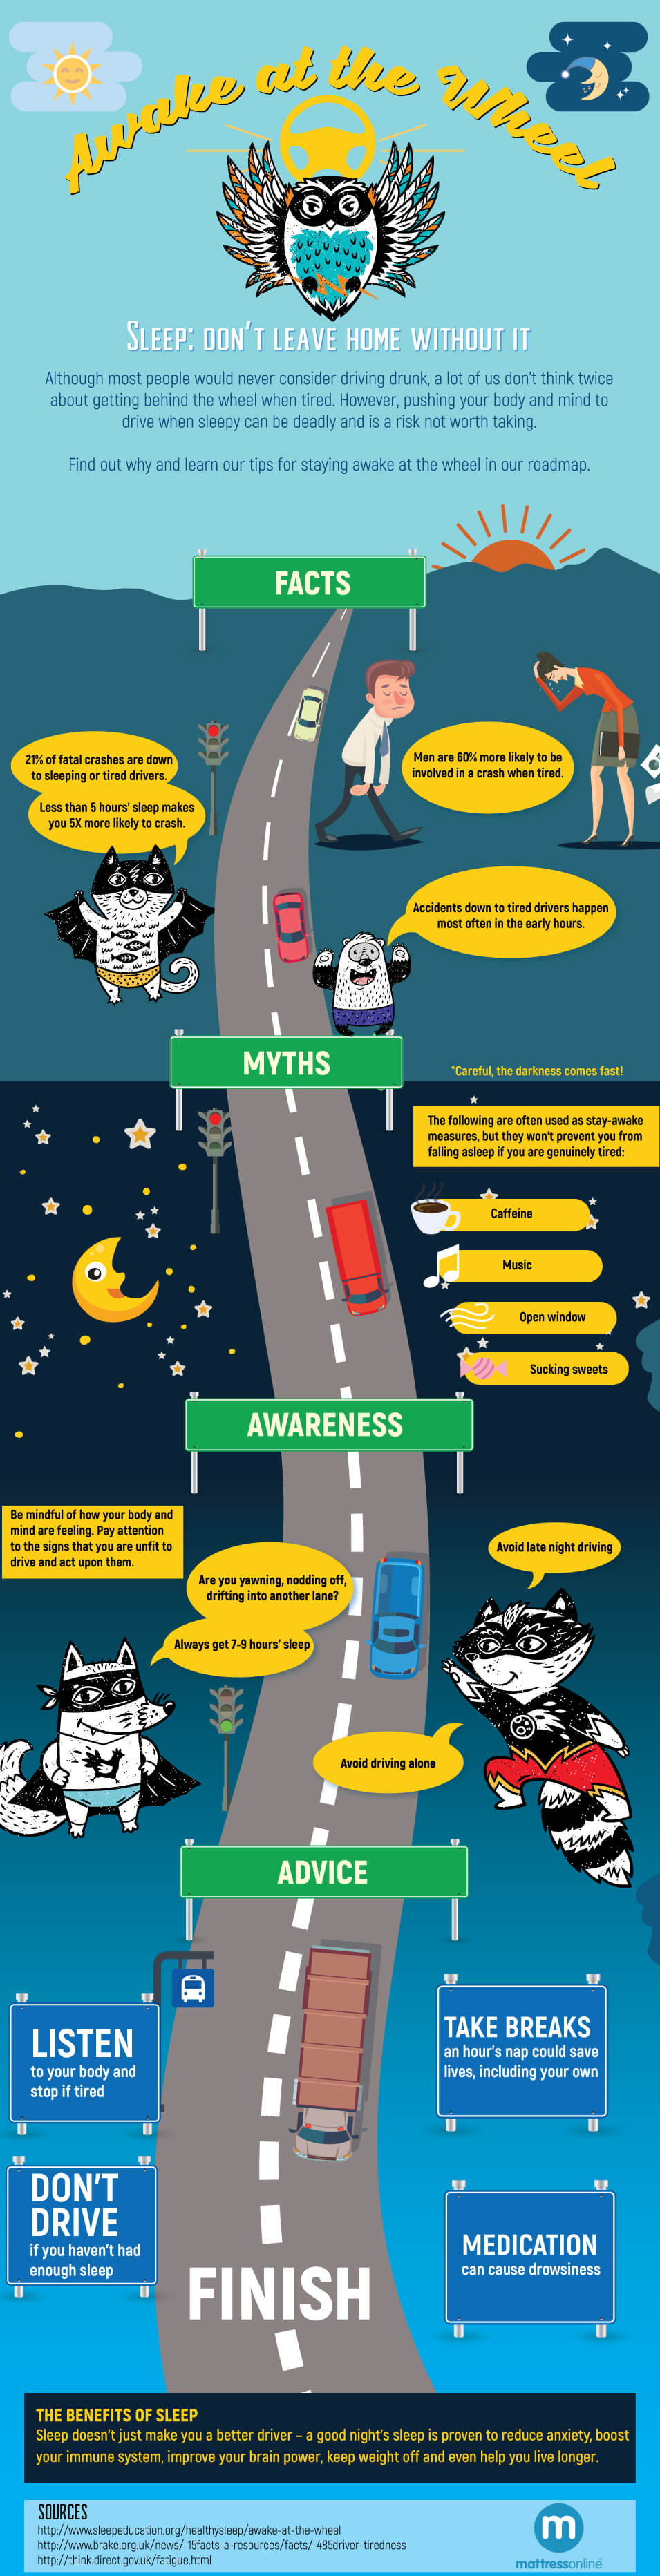 Awake at the Wheel infographic